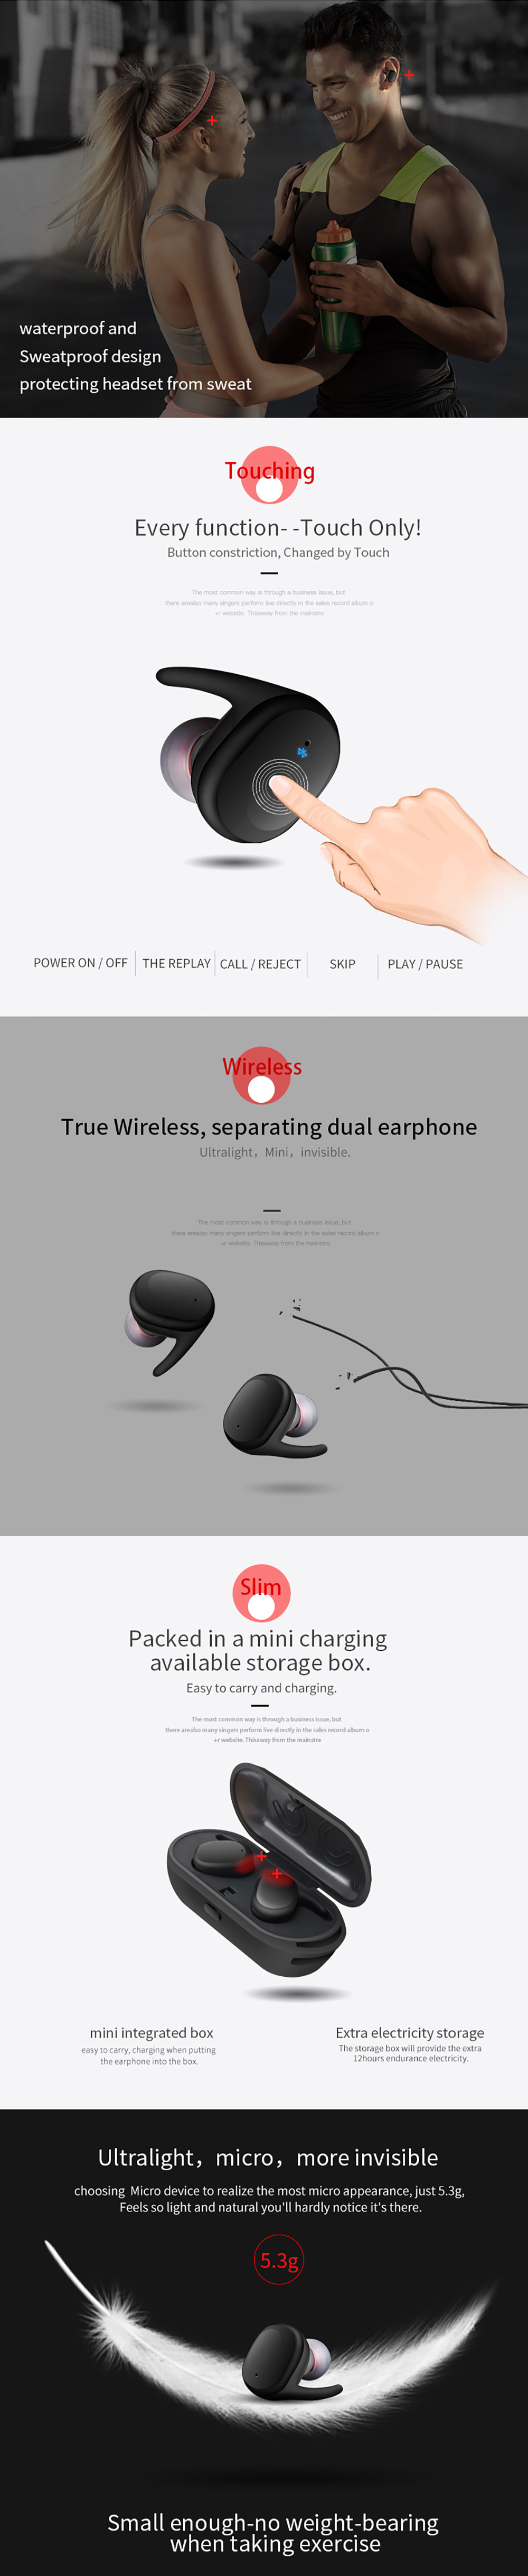 Sago Newest Wireless Eeadphones Bluetooth 5 0 Stereo HD Wireless Earbuds  With Mic Binaural Call Auto Pairing For IOS And Android